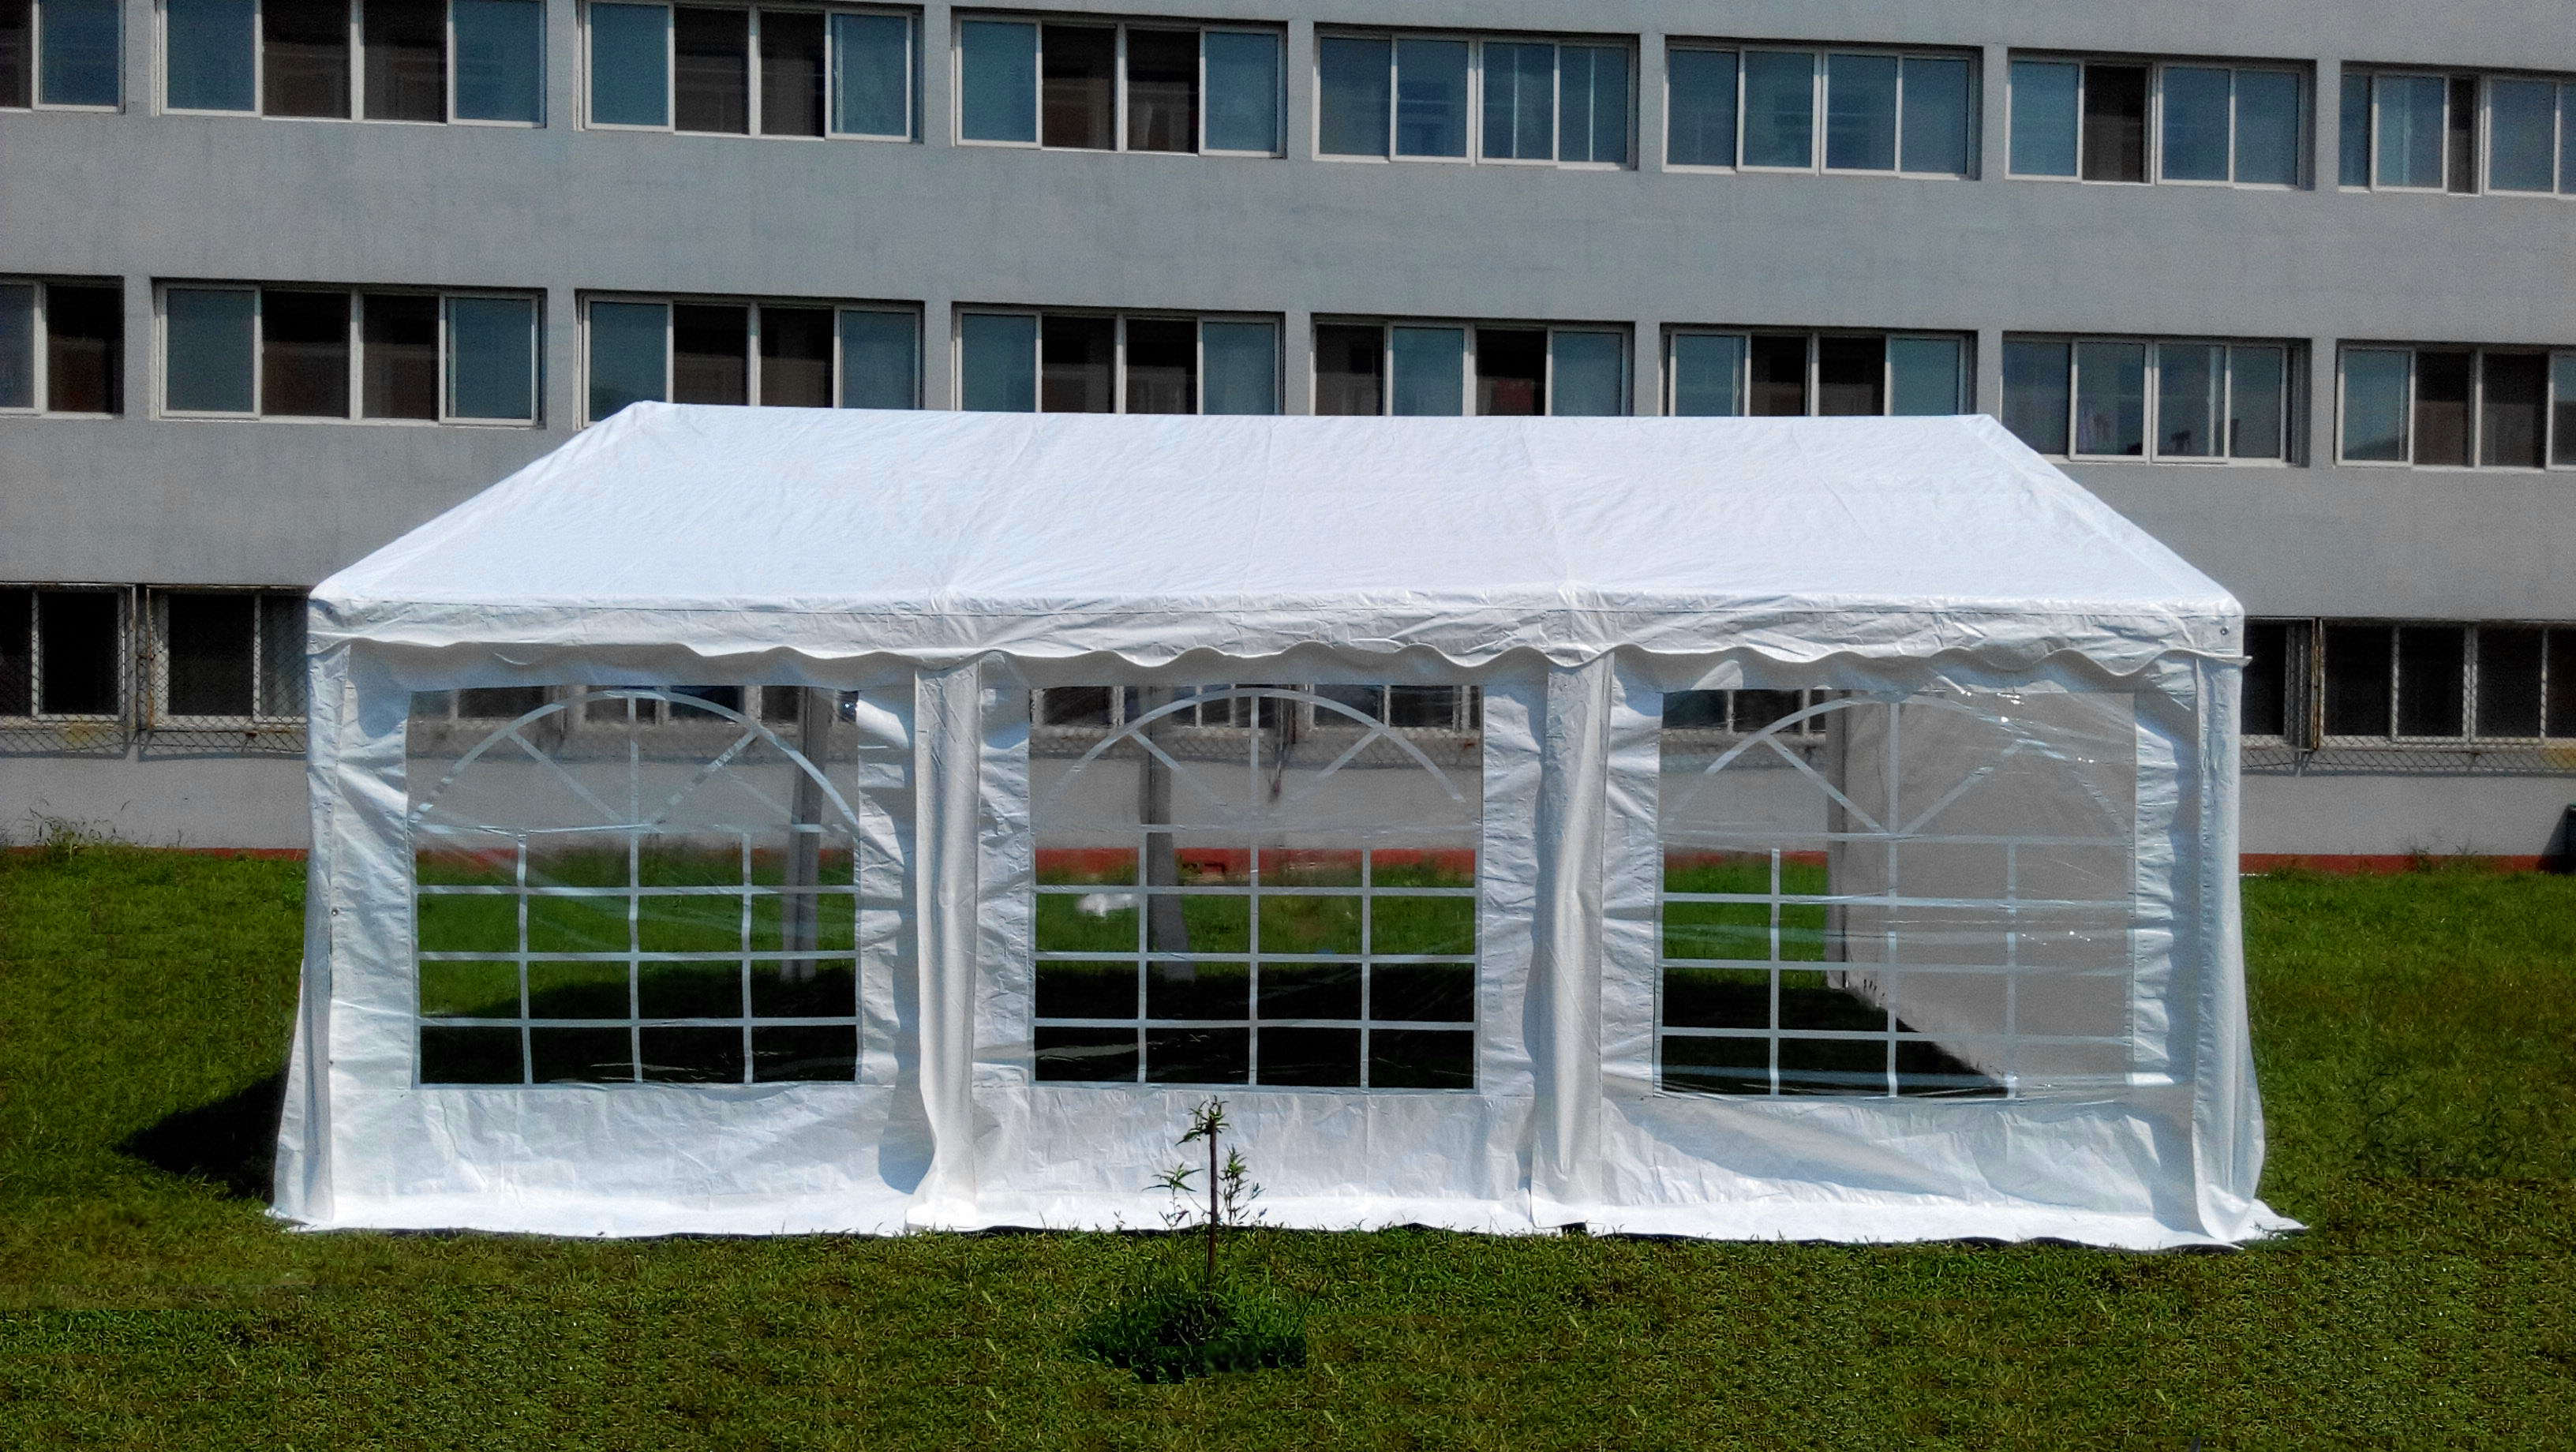 20 x 20 Ft Heavy Duty Commercial Party Canopy Car Shelter Wedding Camping Tent by